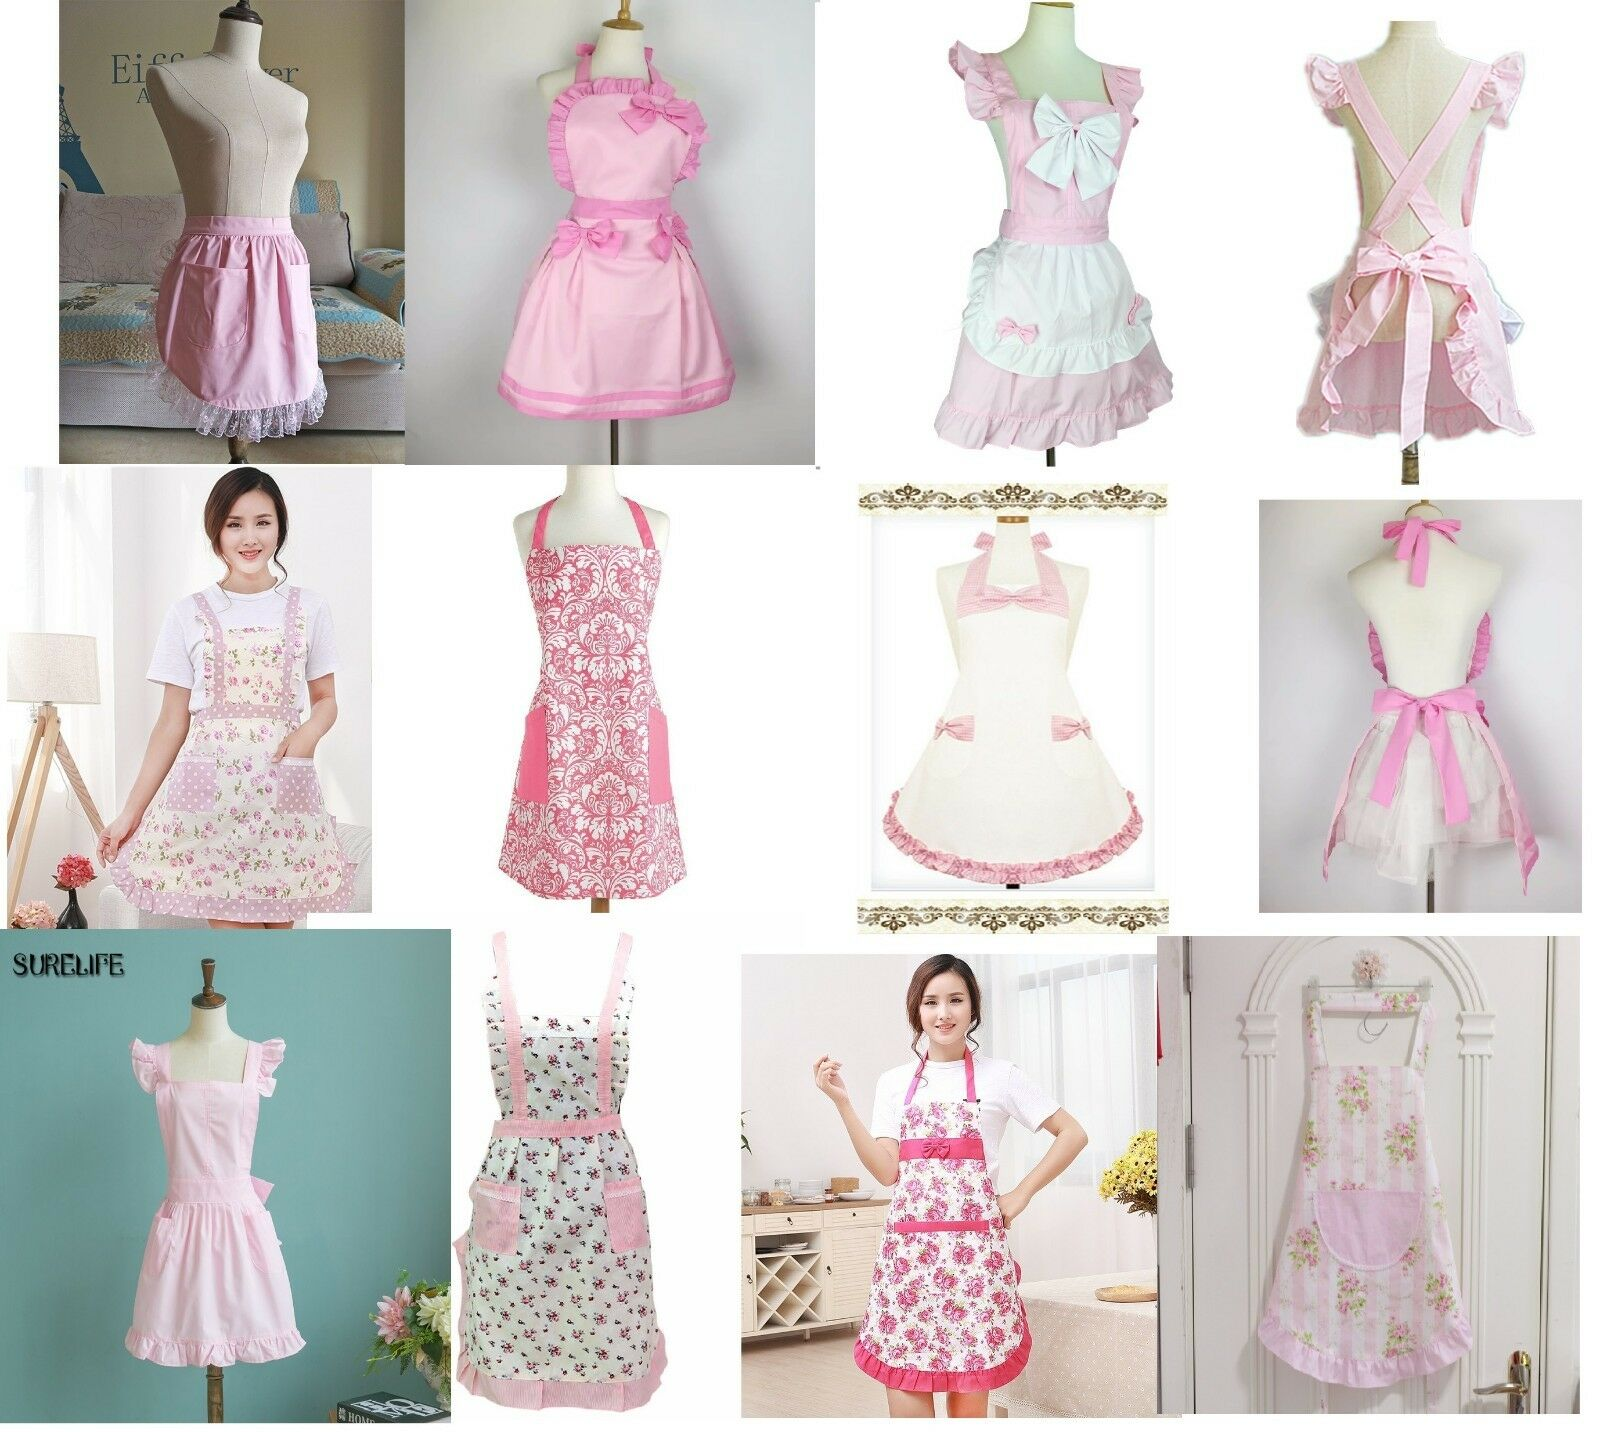 Pink Roses Shabby Chic Retro With Pocket Half Apron Pinny 50s Girls Victorian